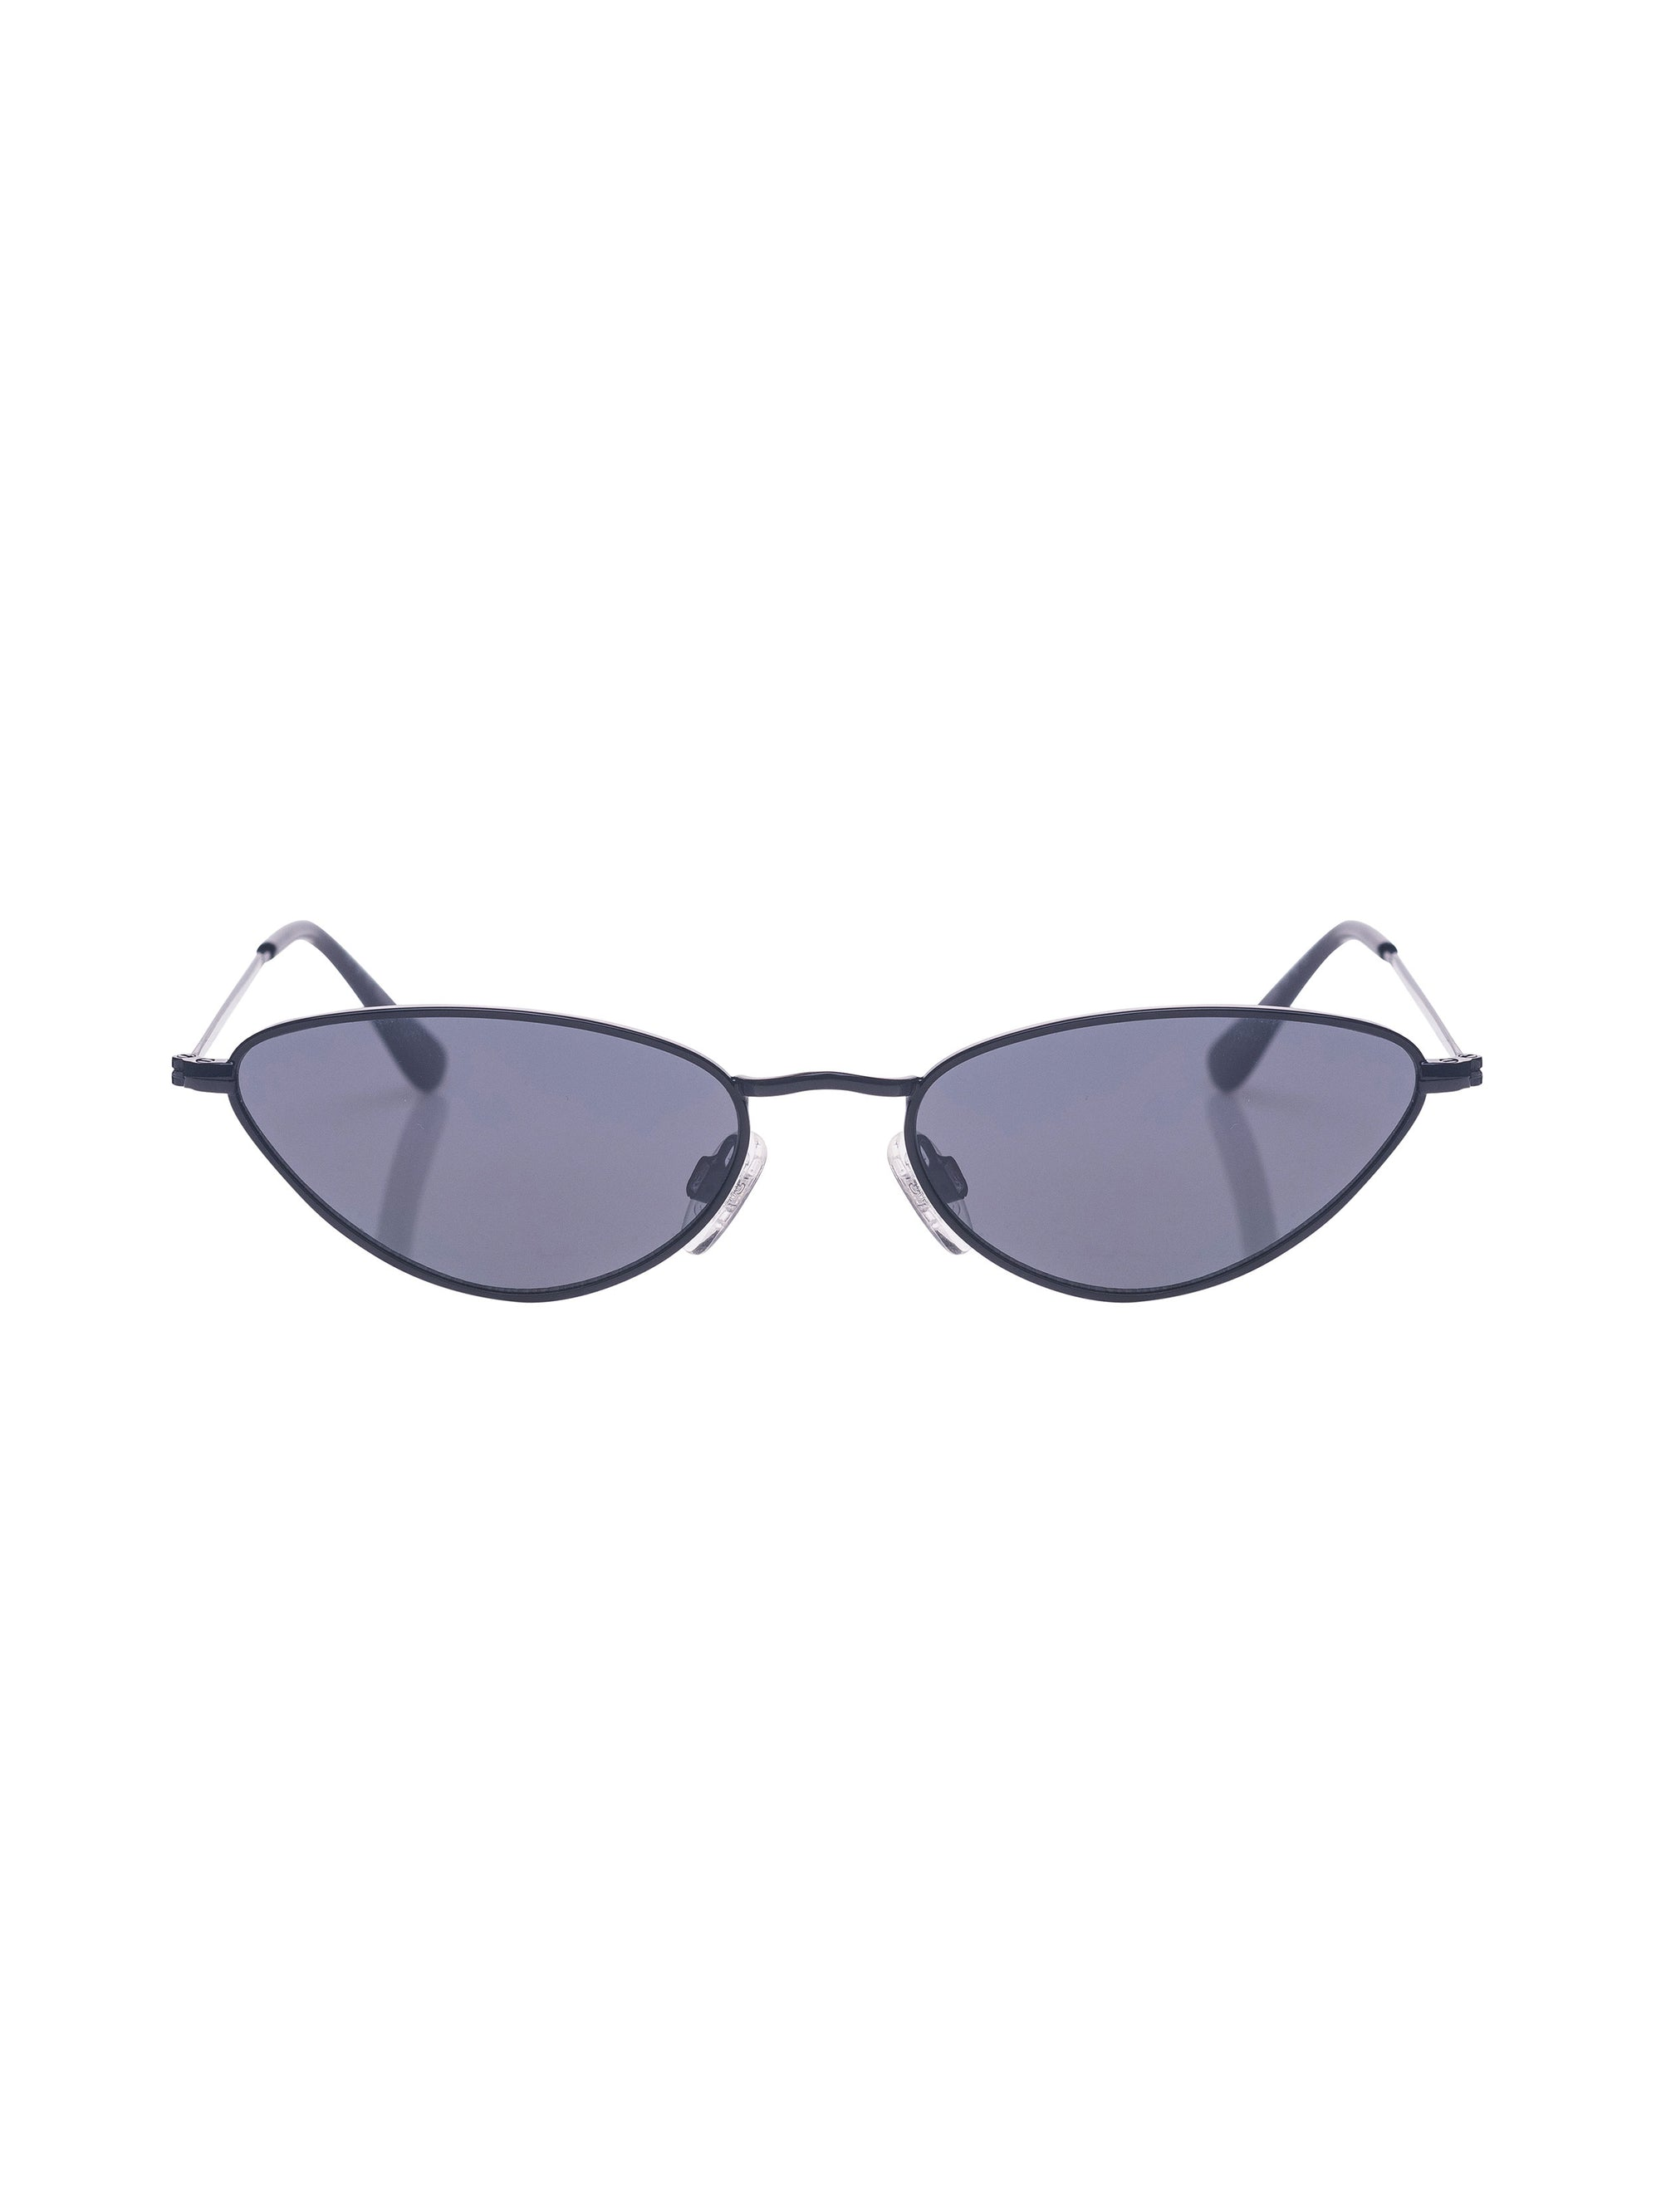 Lentes Carolina Lemke CL1706 01